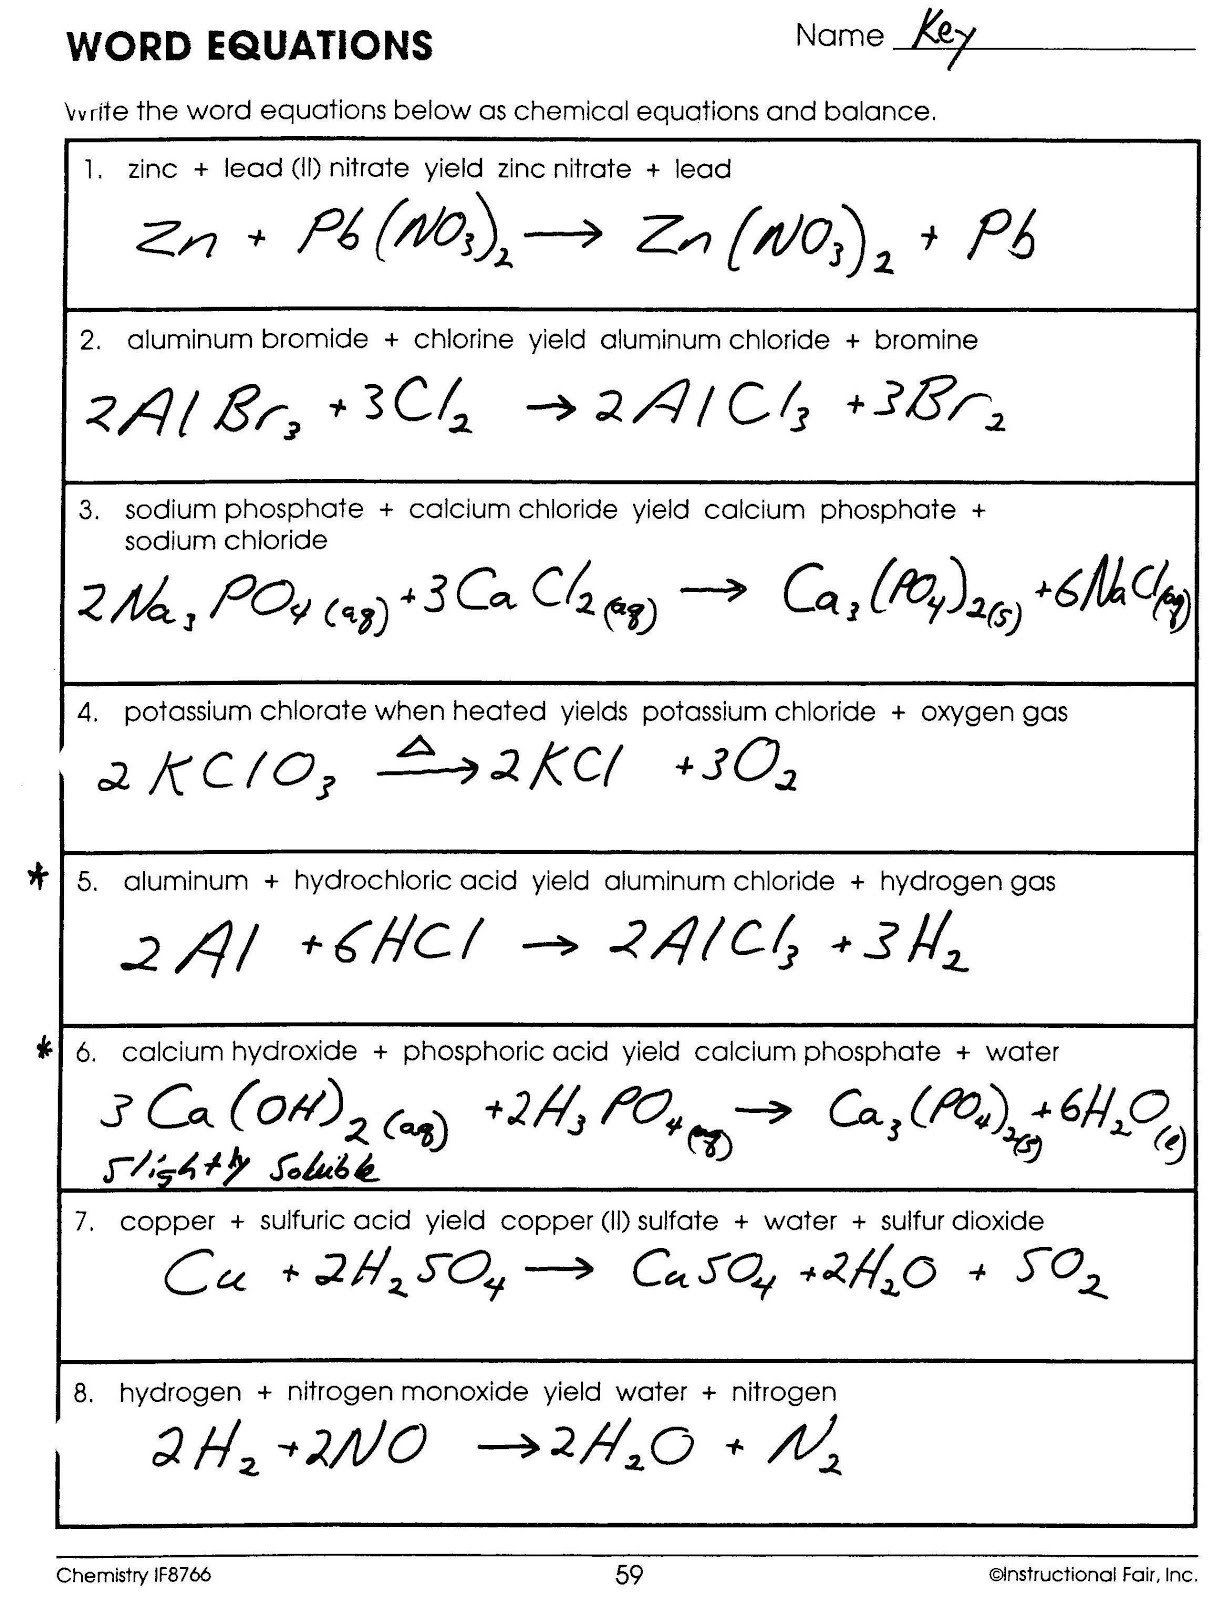 Chemical formulas and Equations Worksheet Spice Of Lyfe